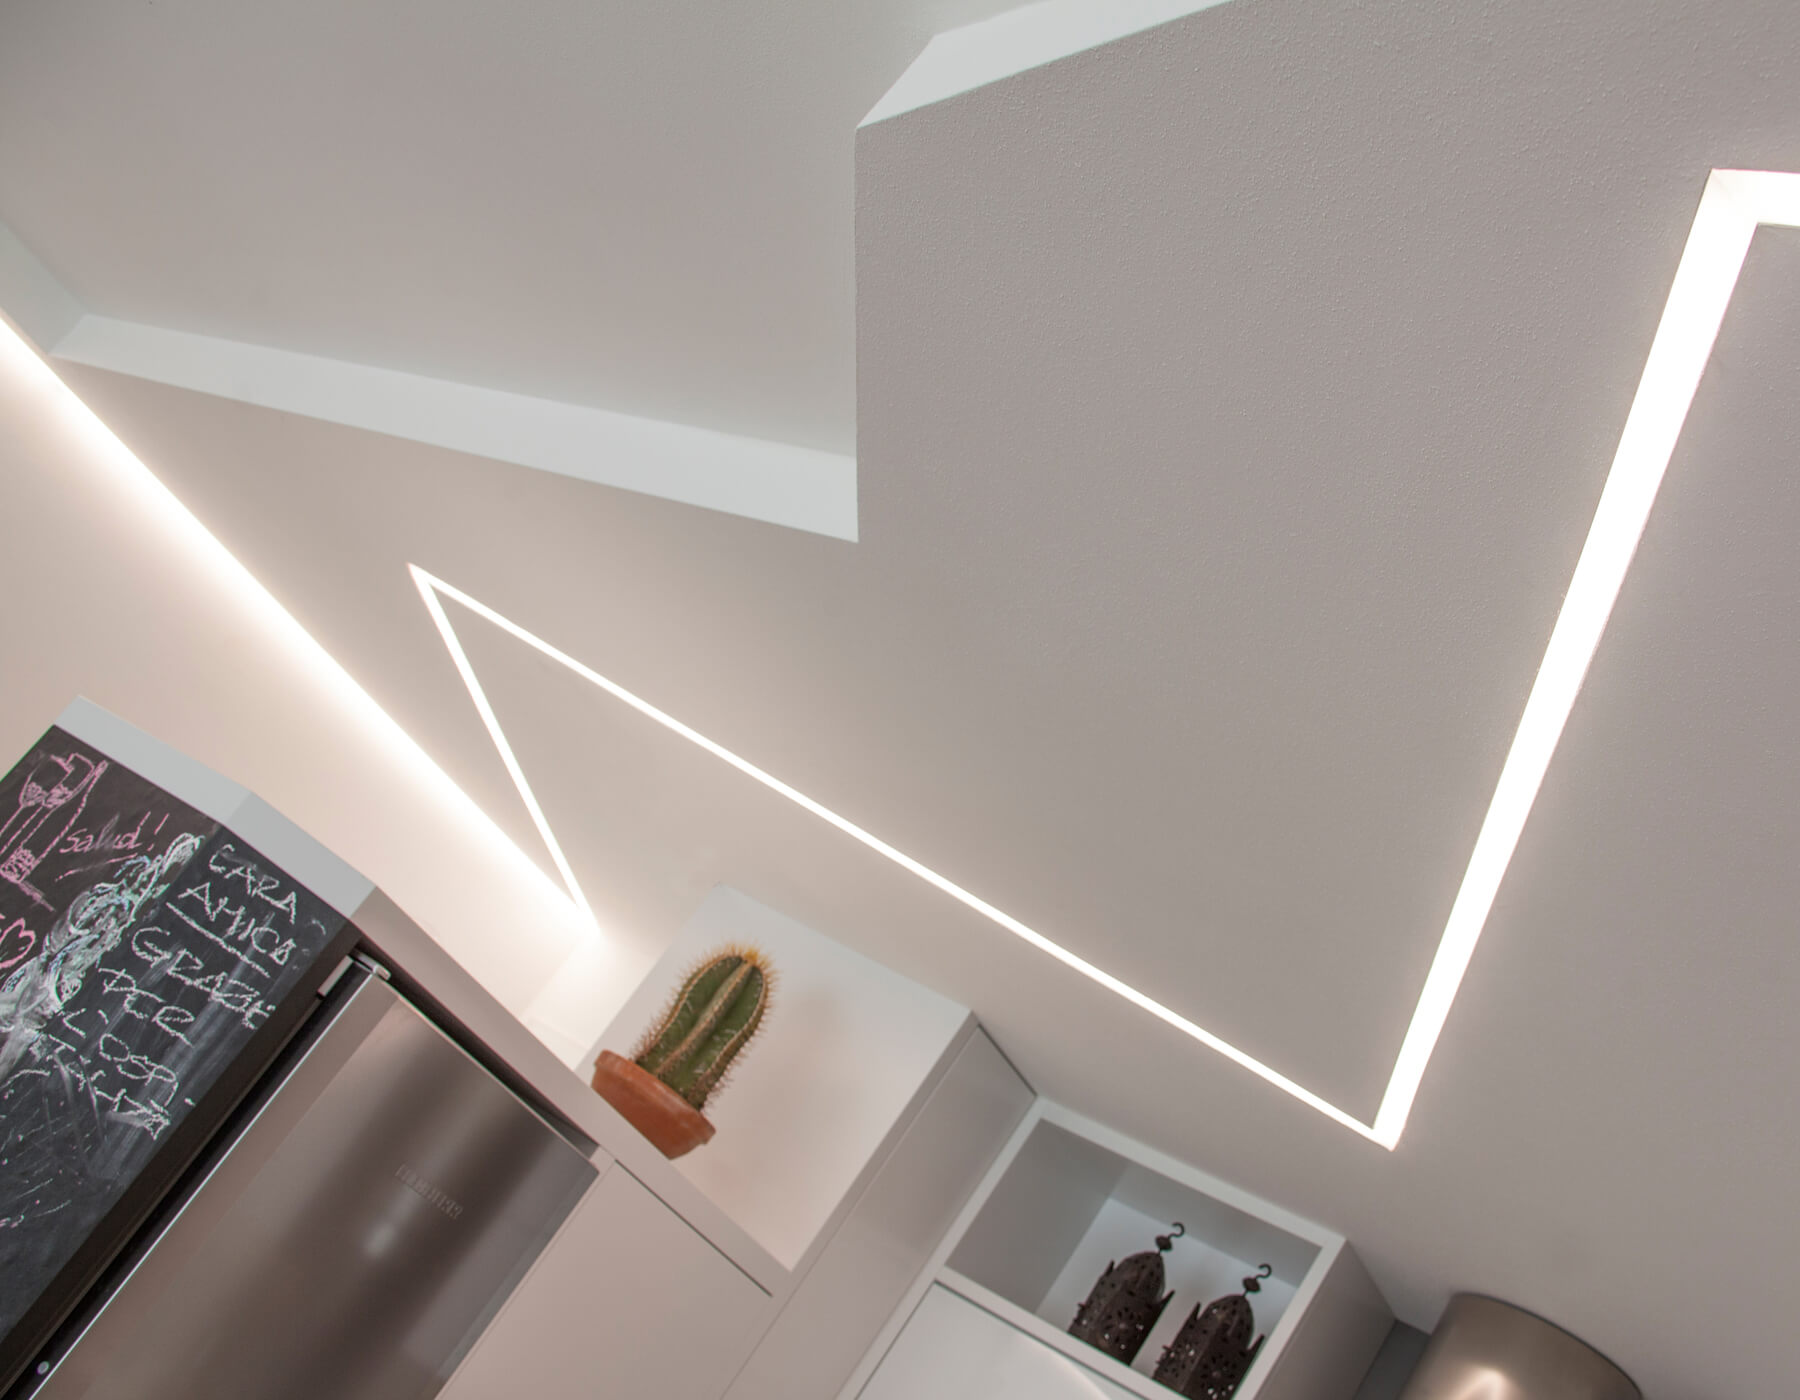 Barra filo led brillamenti 2 brillamenti - Come illuminare casa ...